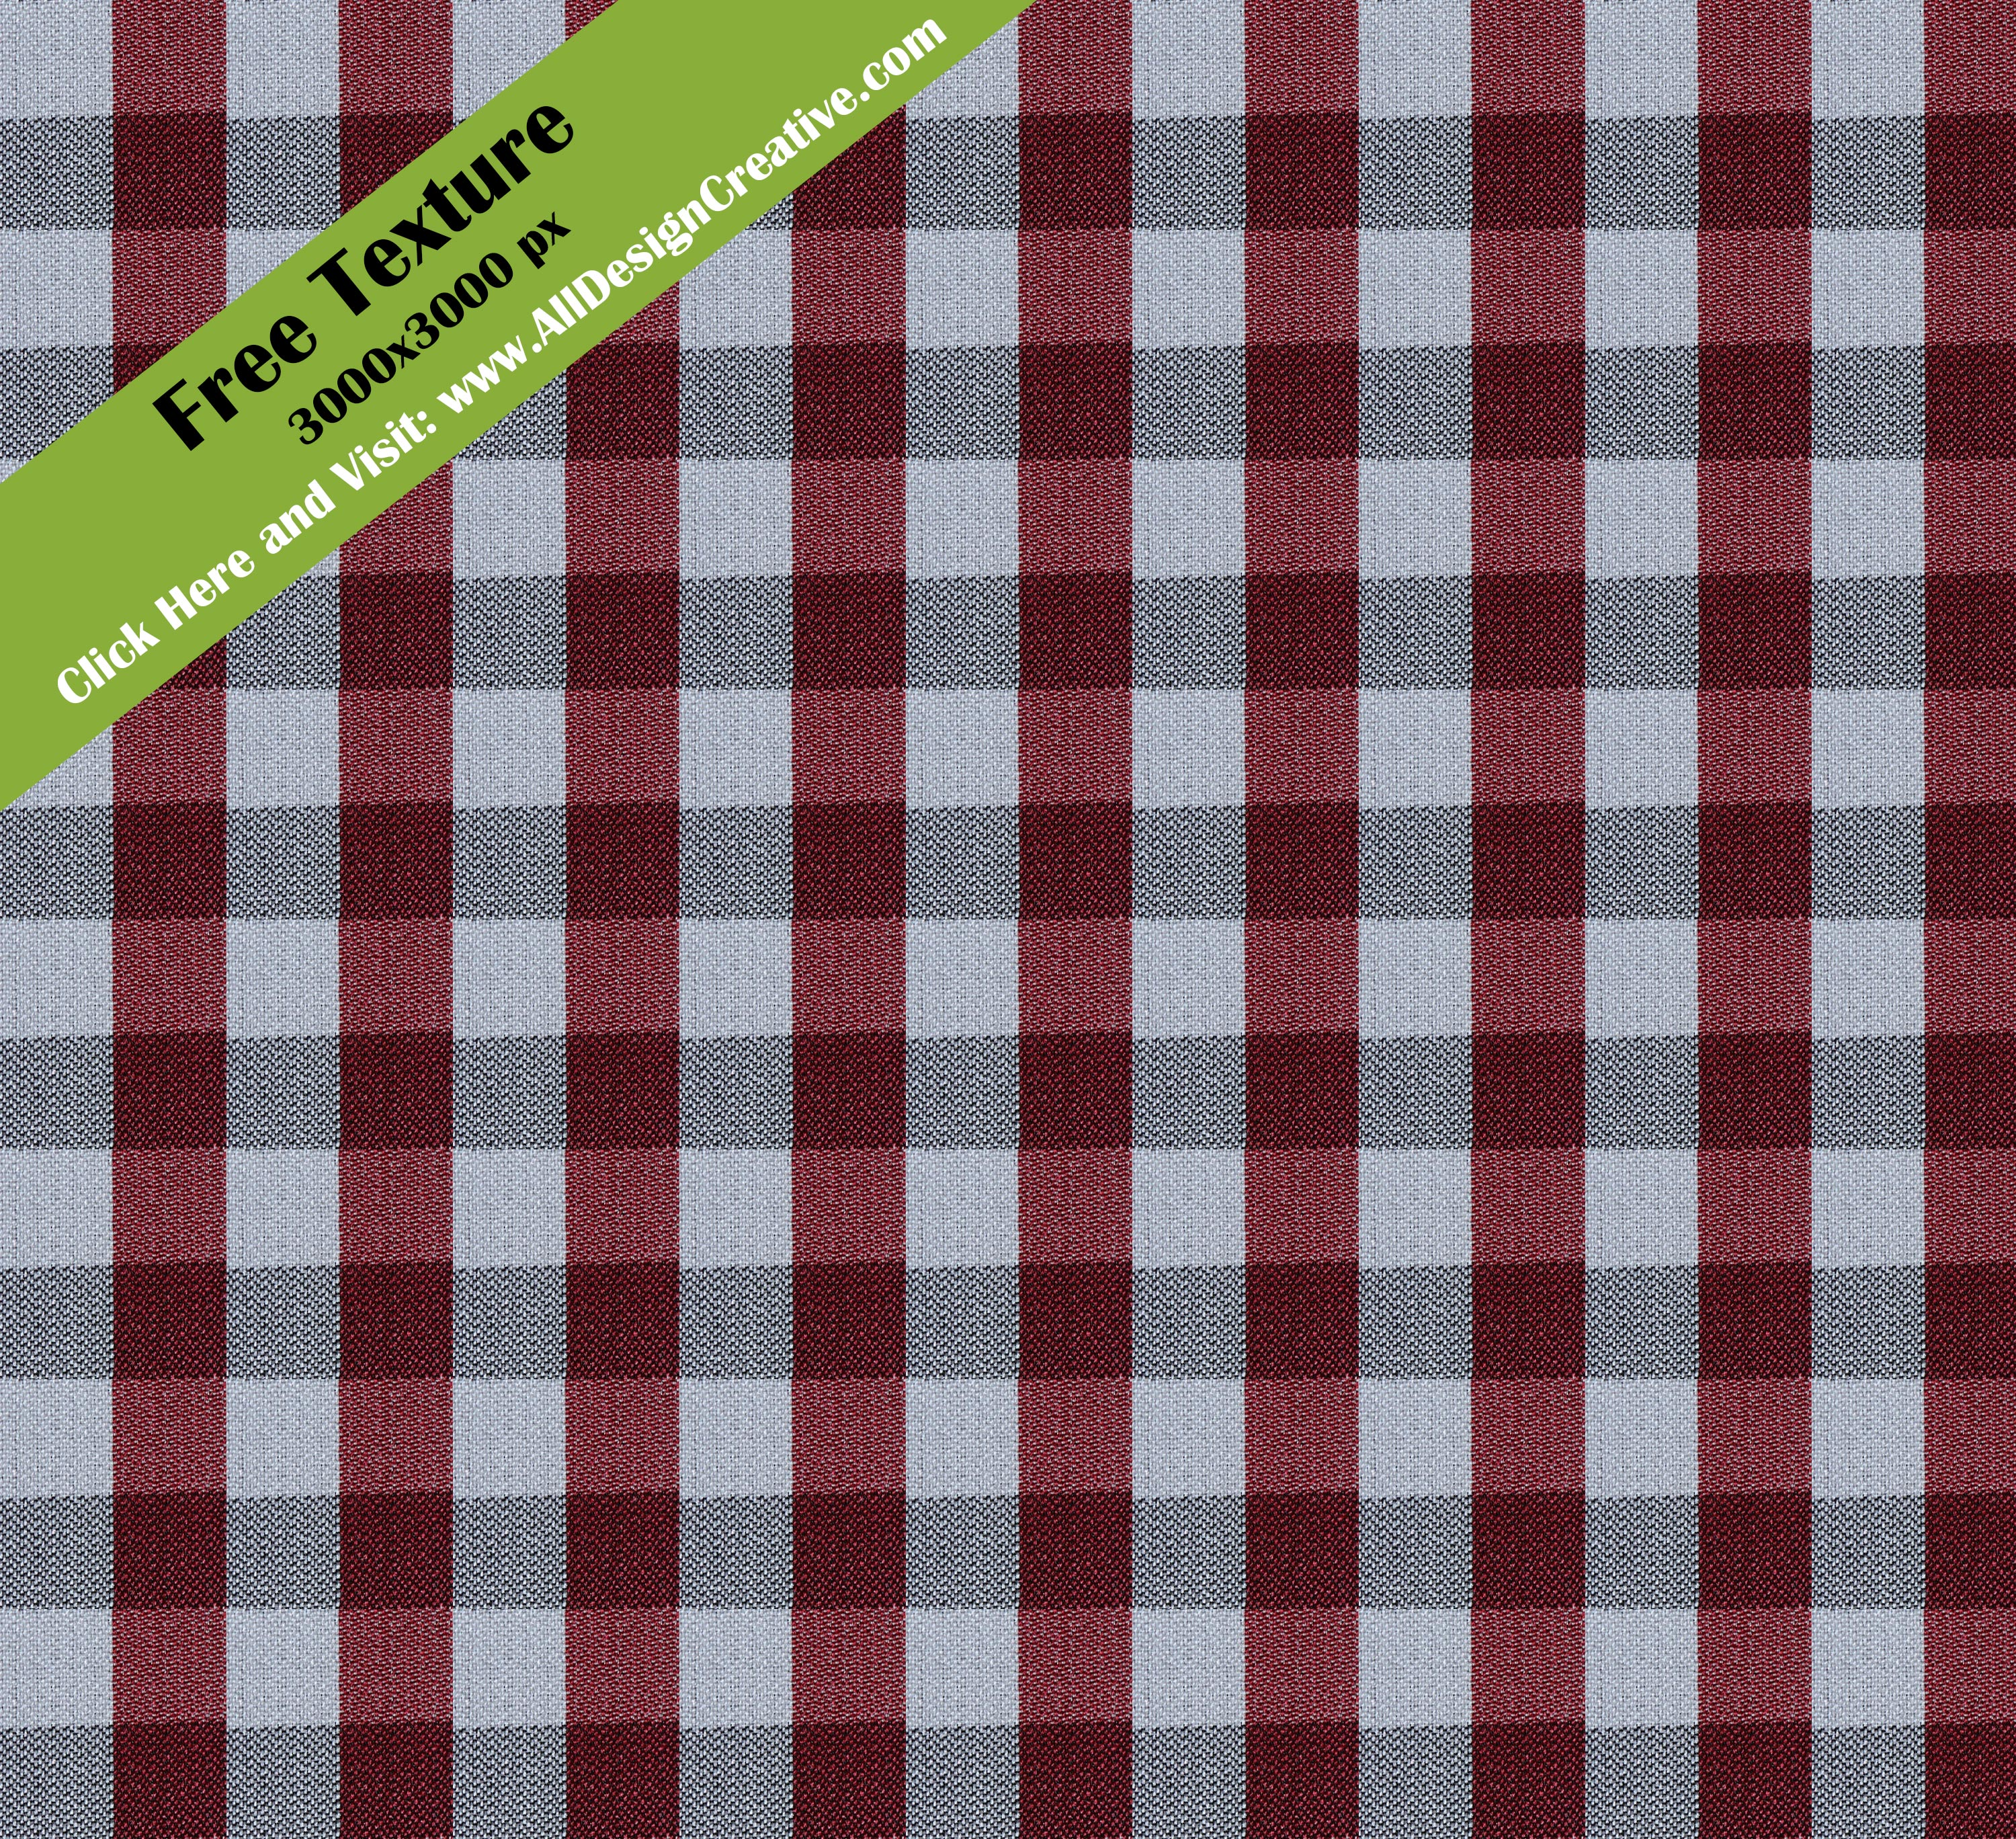 Male Cloth Texture-Free For Commercial Use